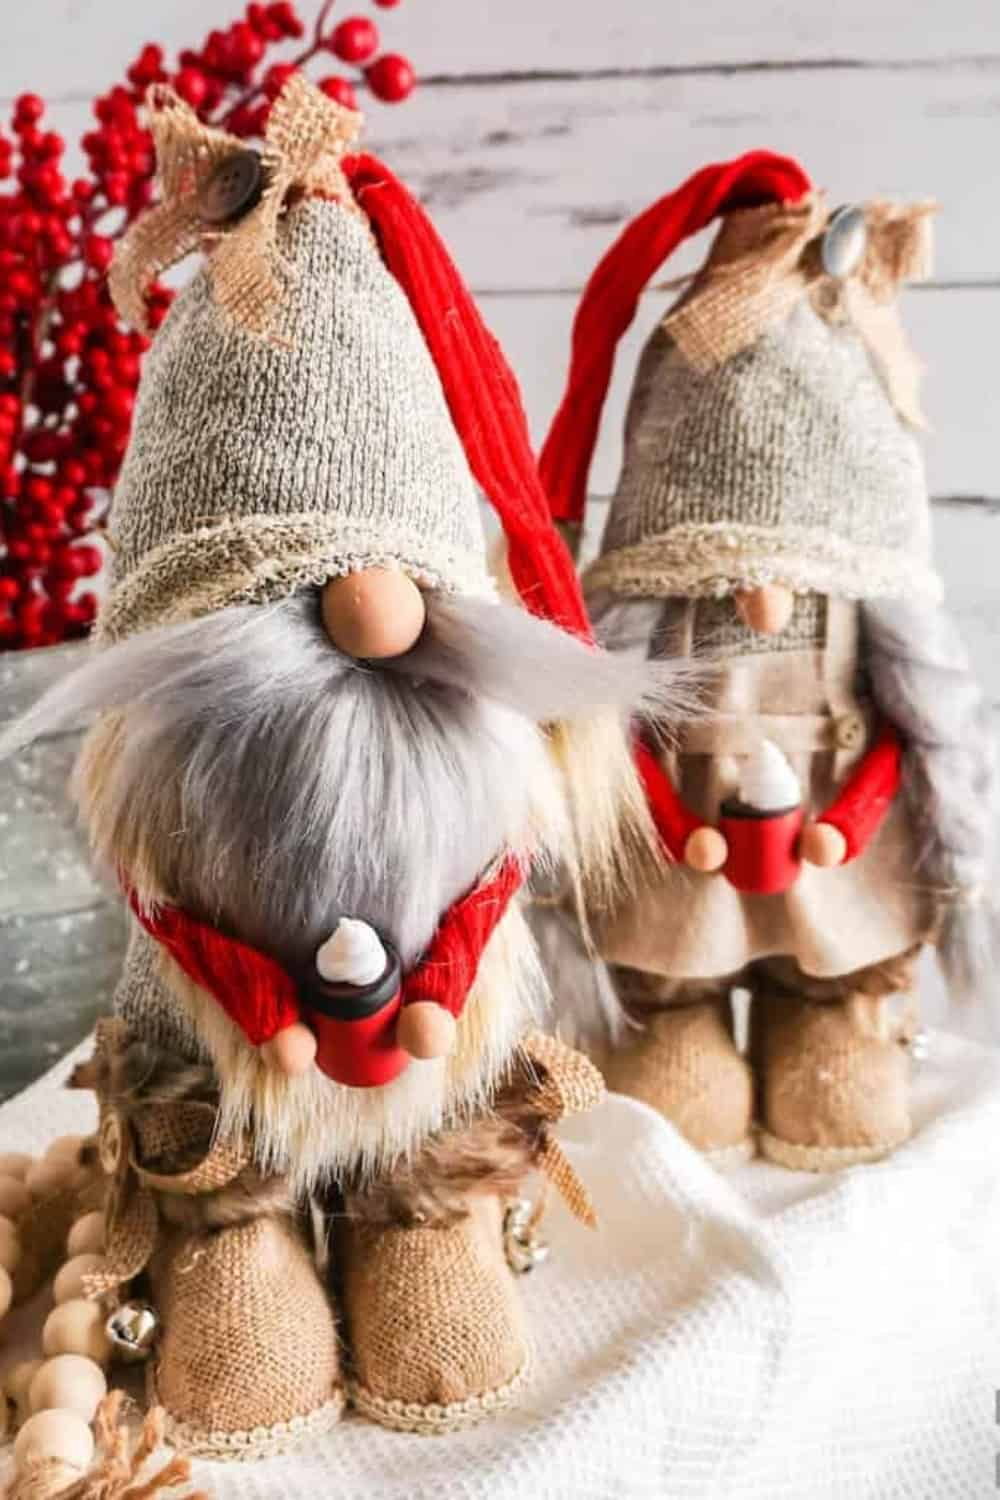 DIY Christmas gnomes-gnomes with arms and legs